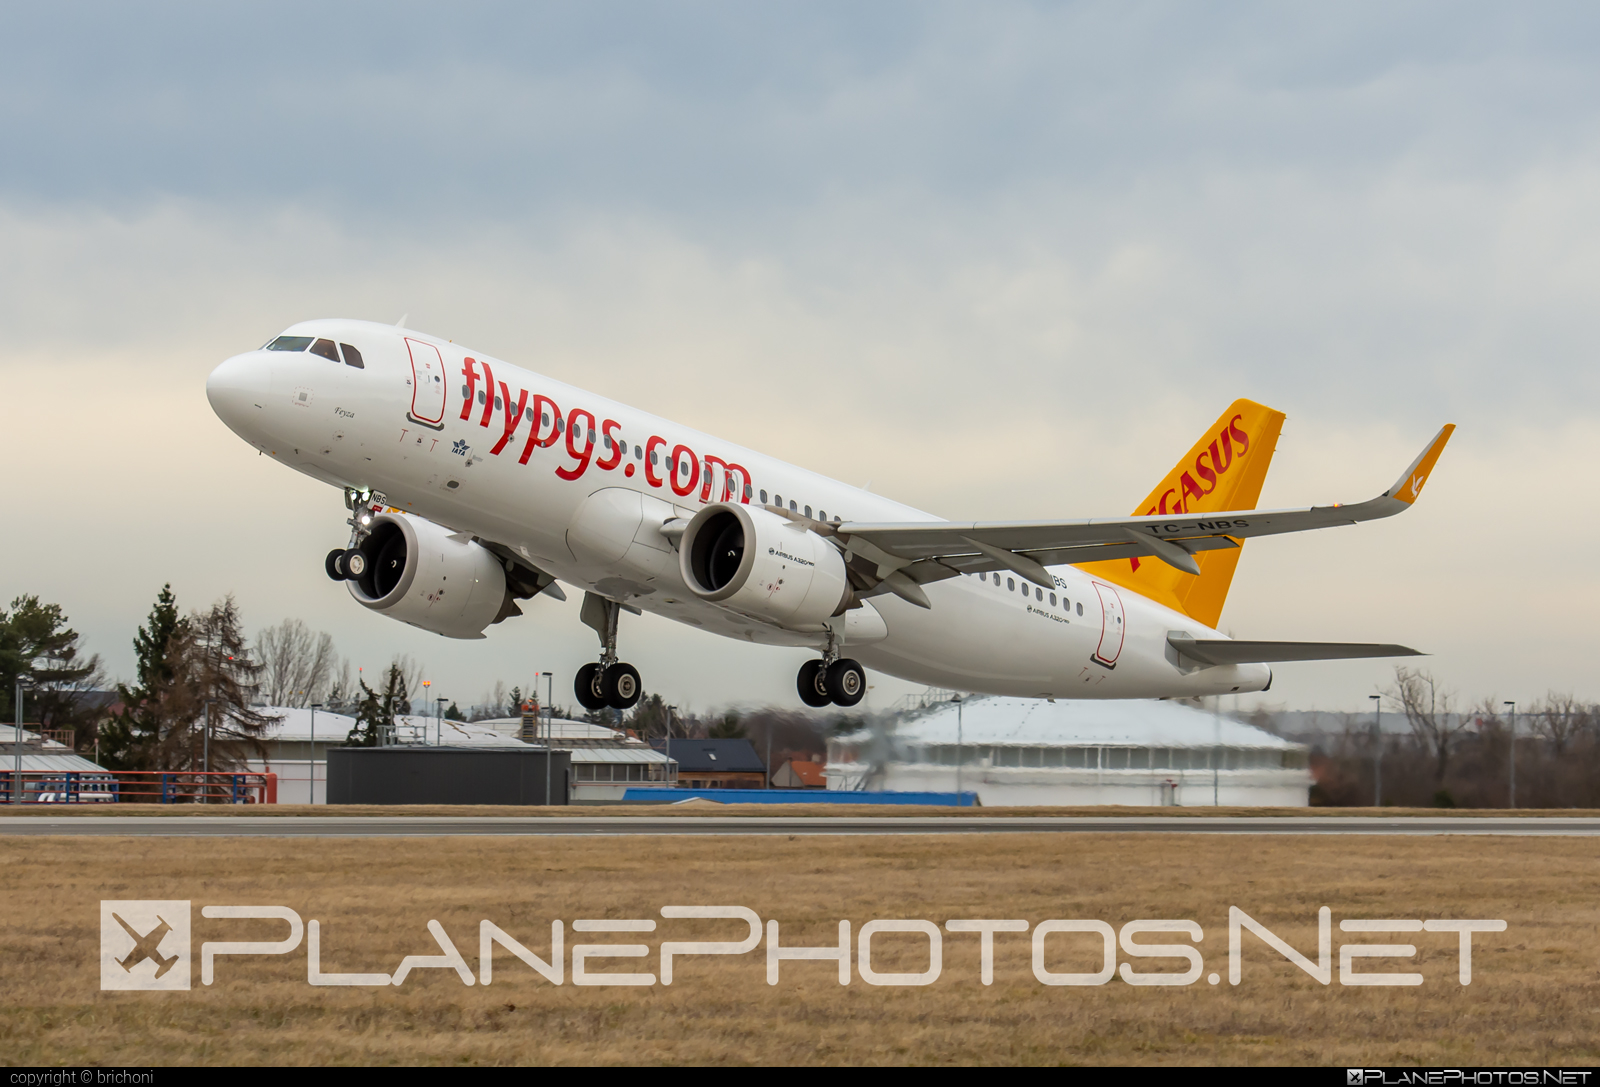 Airbus A320-251N - TC-NBS operated by Pegasus Airlines #a320 #a320family #a320neo #airbus #airbus320